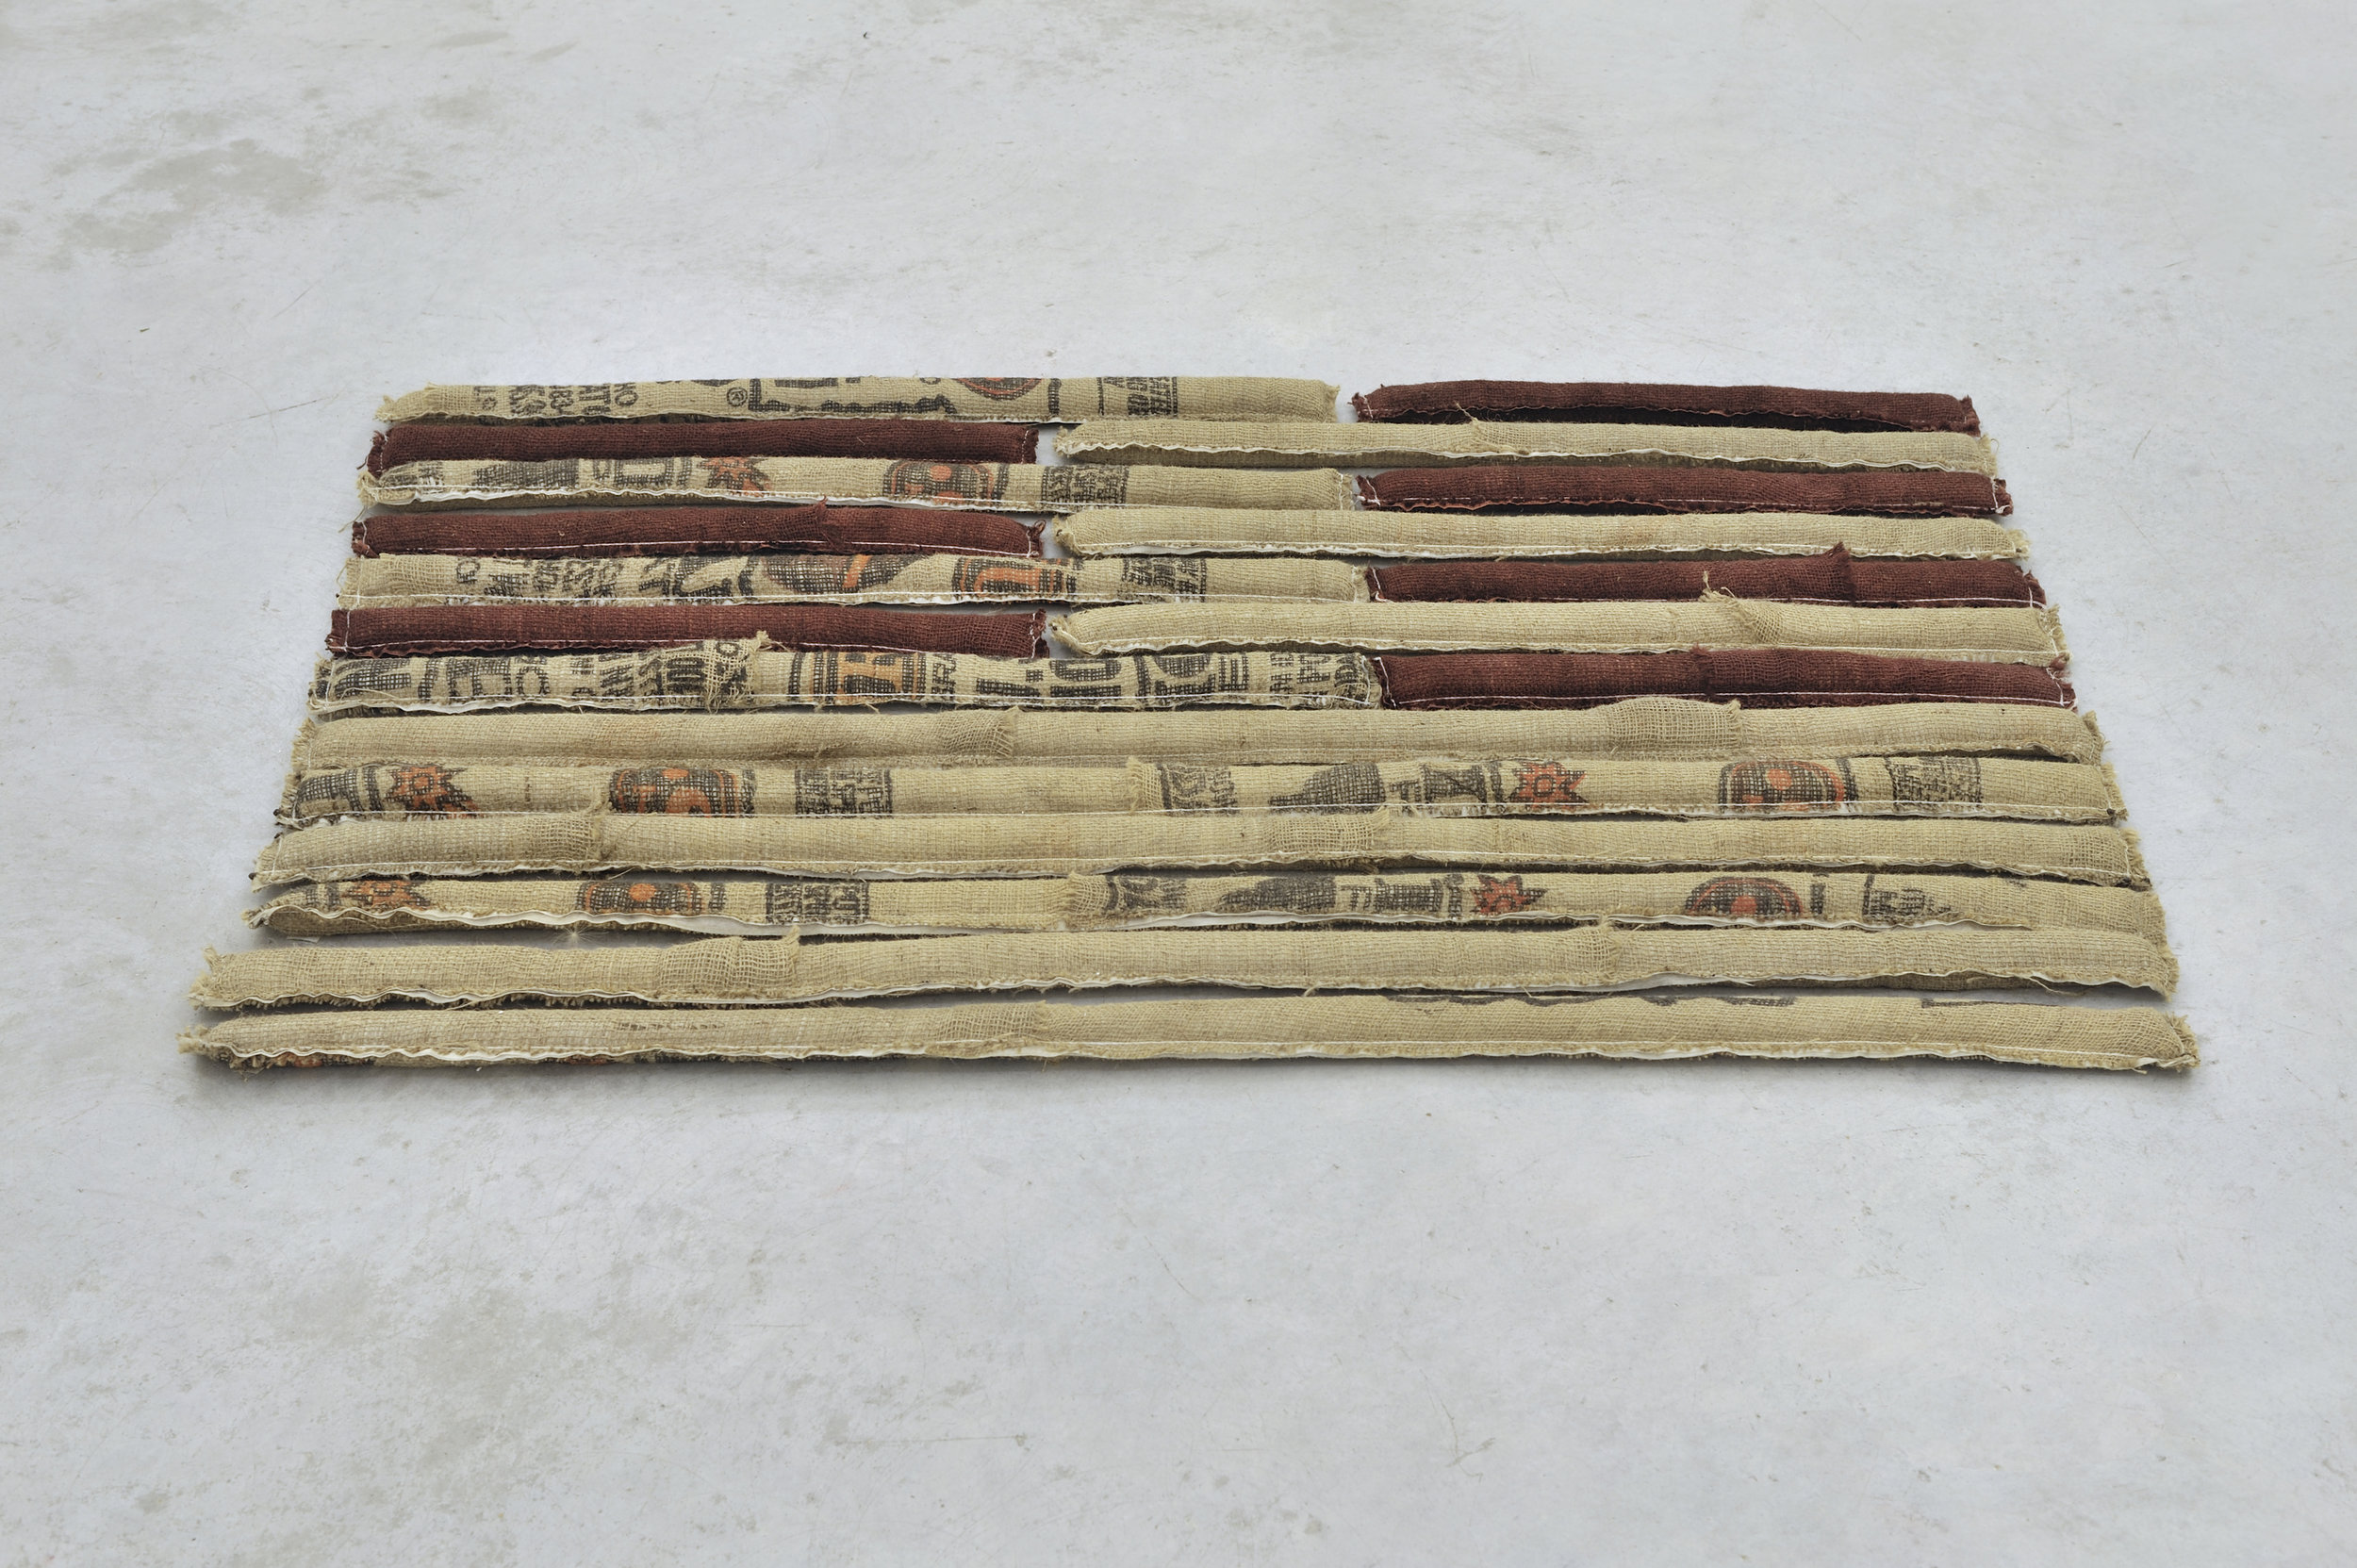 Deconstructing 13 Stripes and a Rectangle-Spur, 2011 burlap and sand 90 x 146 x 6 cm - 35 3/8 x 57 1/2 x 2 3/8 inches